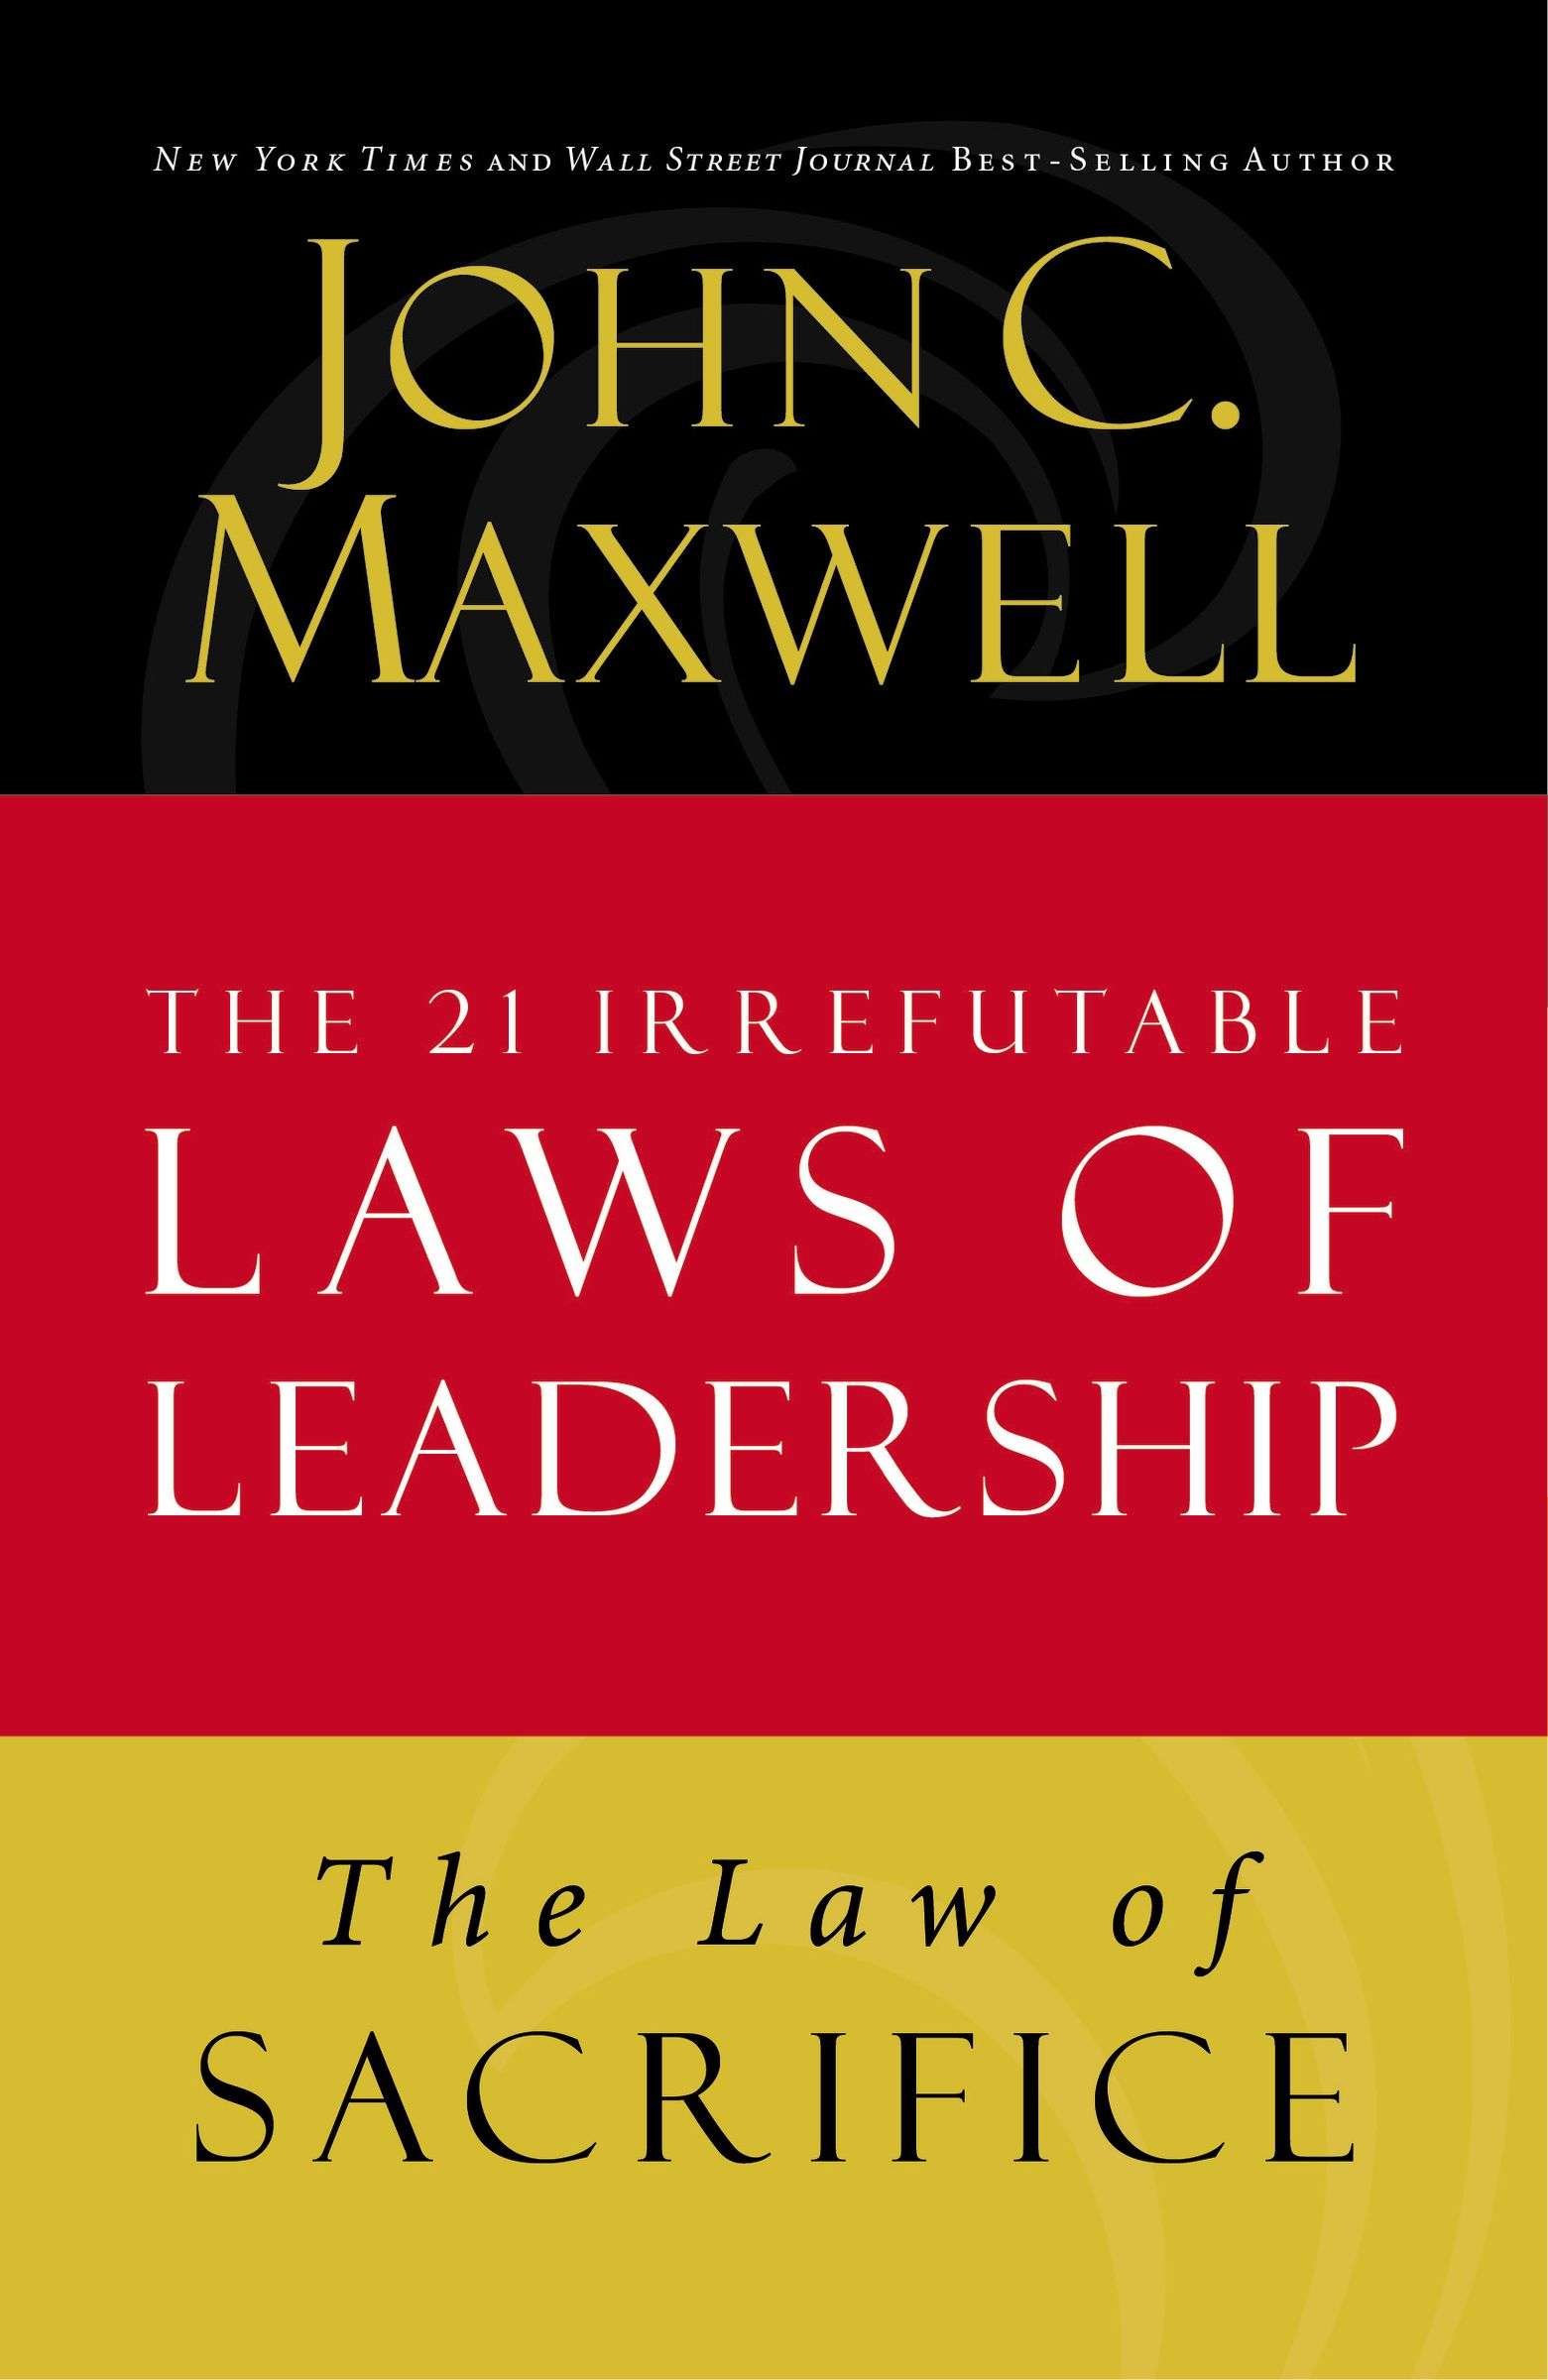 Download Ebook The Law of Sacrifice by John C. Maxwell Pdf